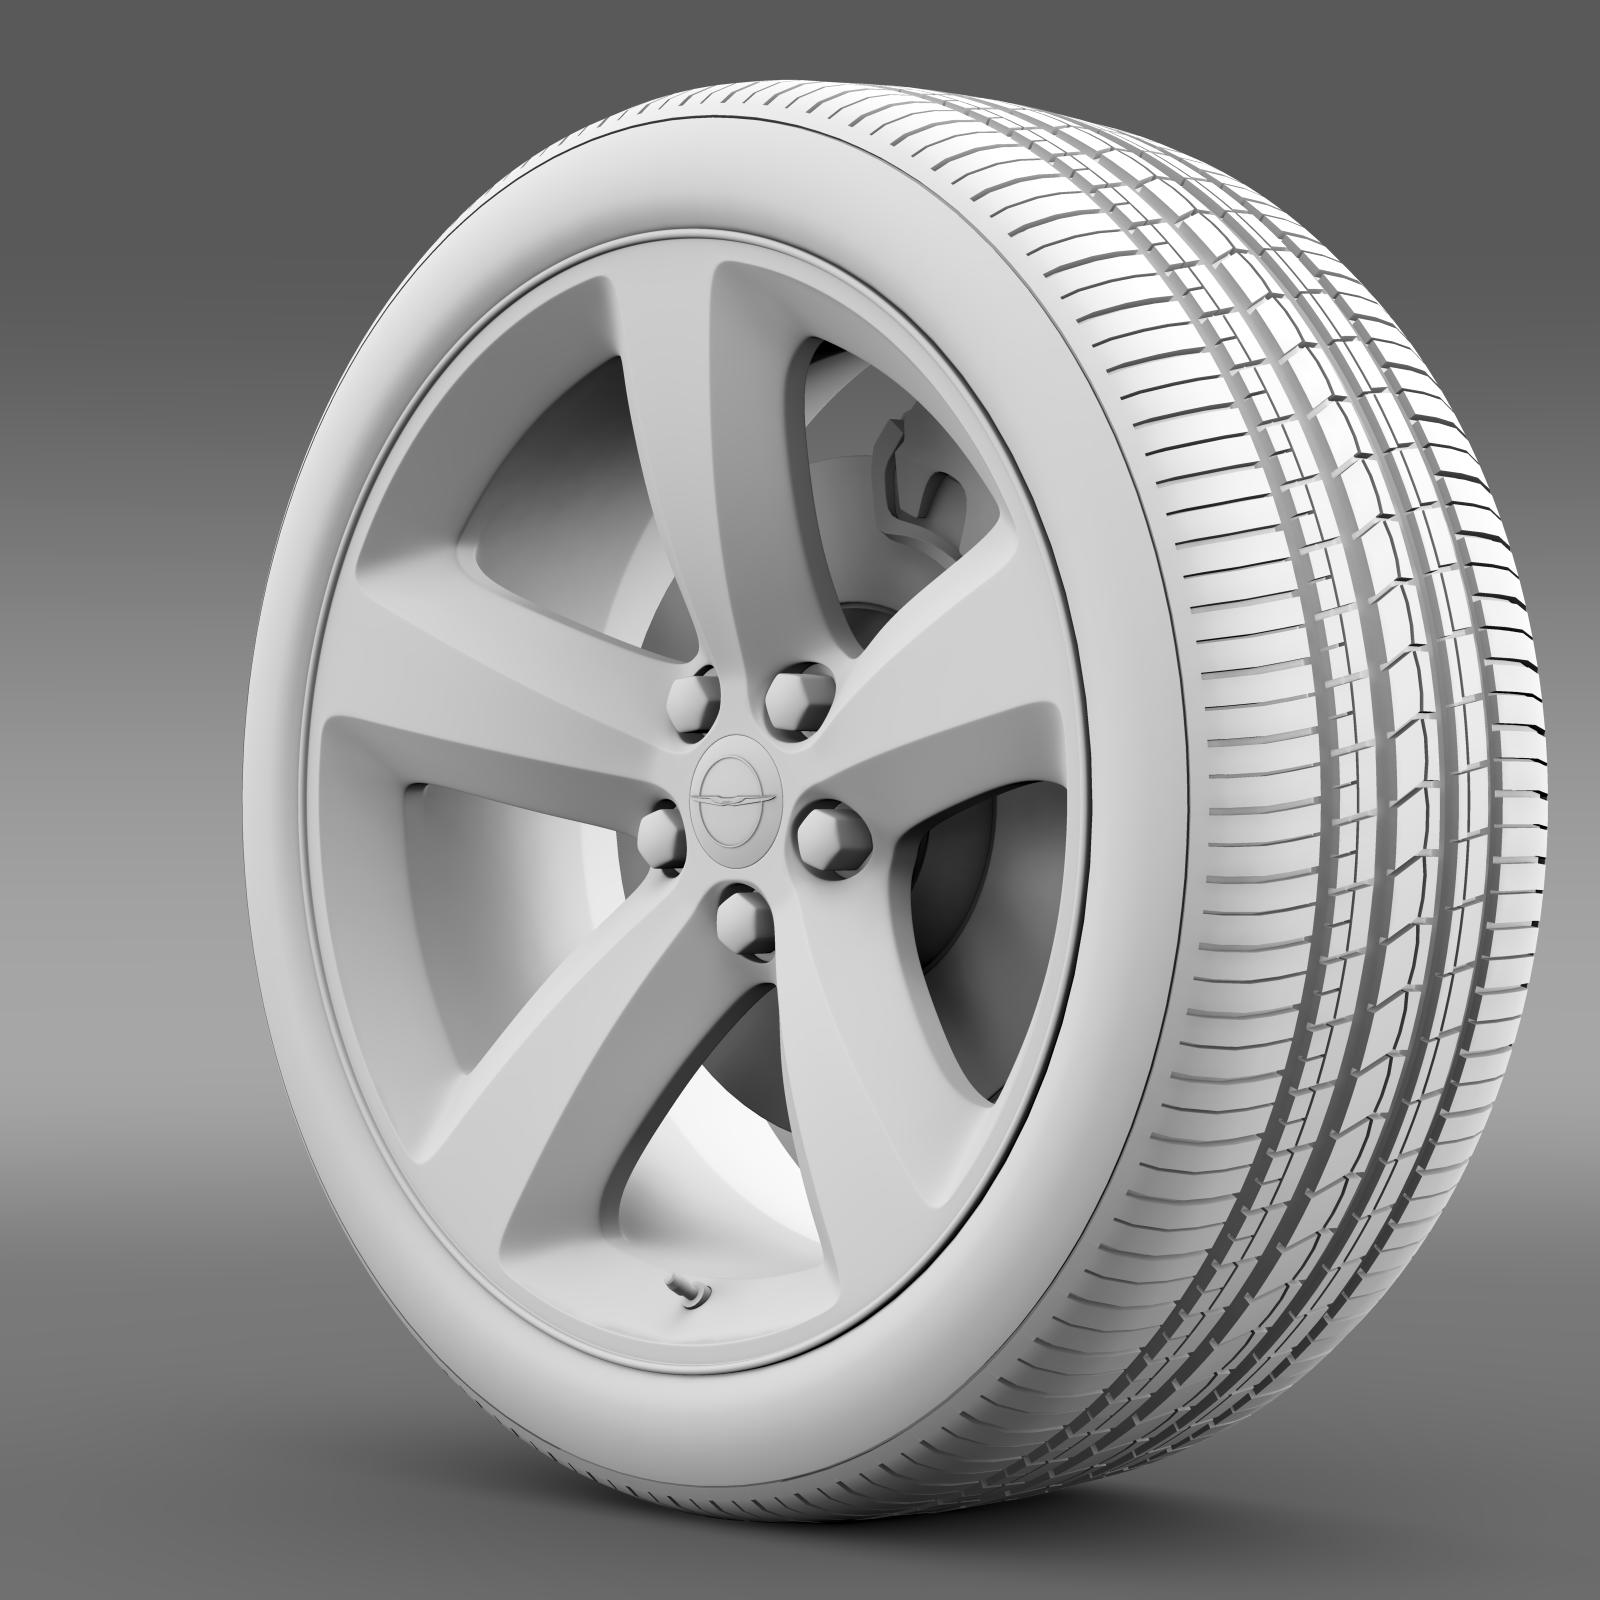 chrysler 300s wheel 3d model 3ds max fbx c4d lwo ma mb hrc xsi obj 210674